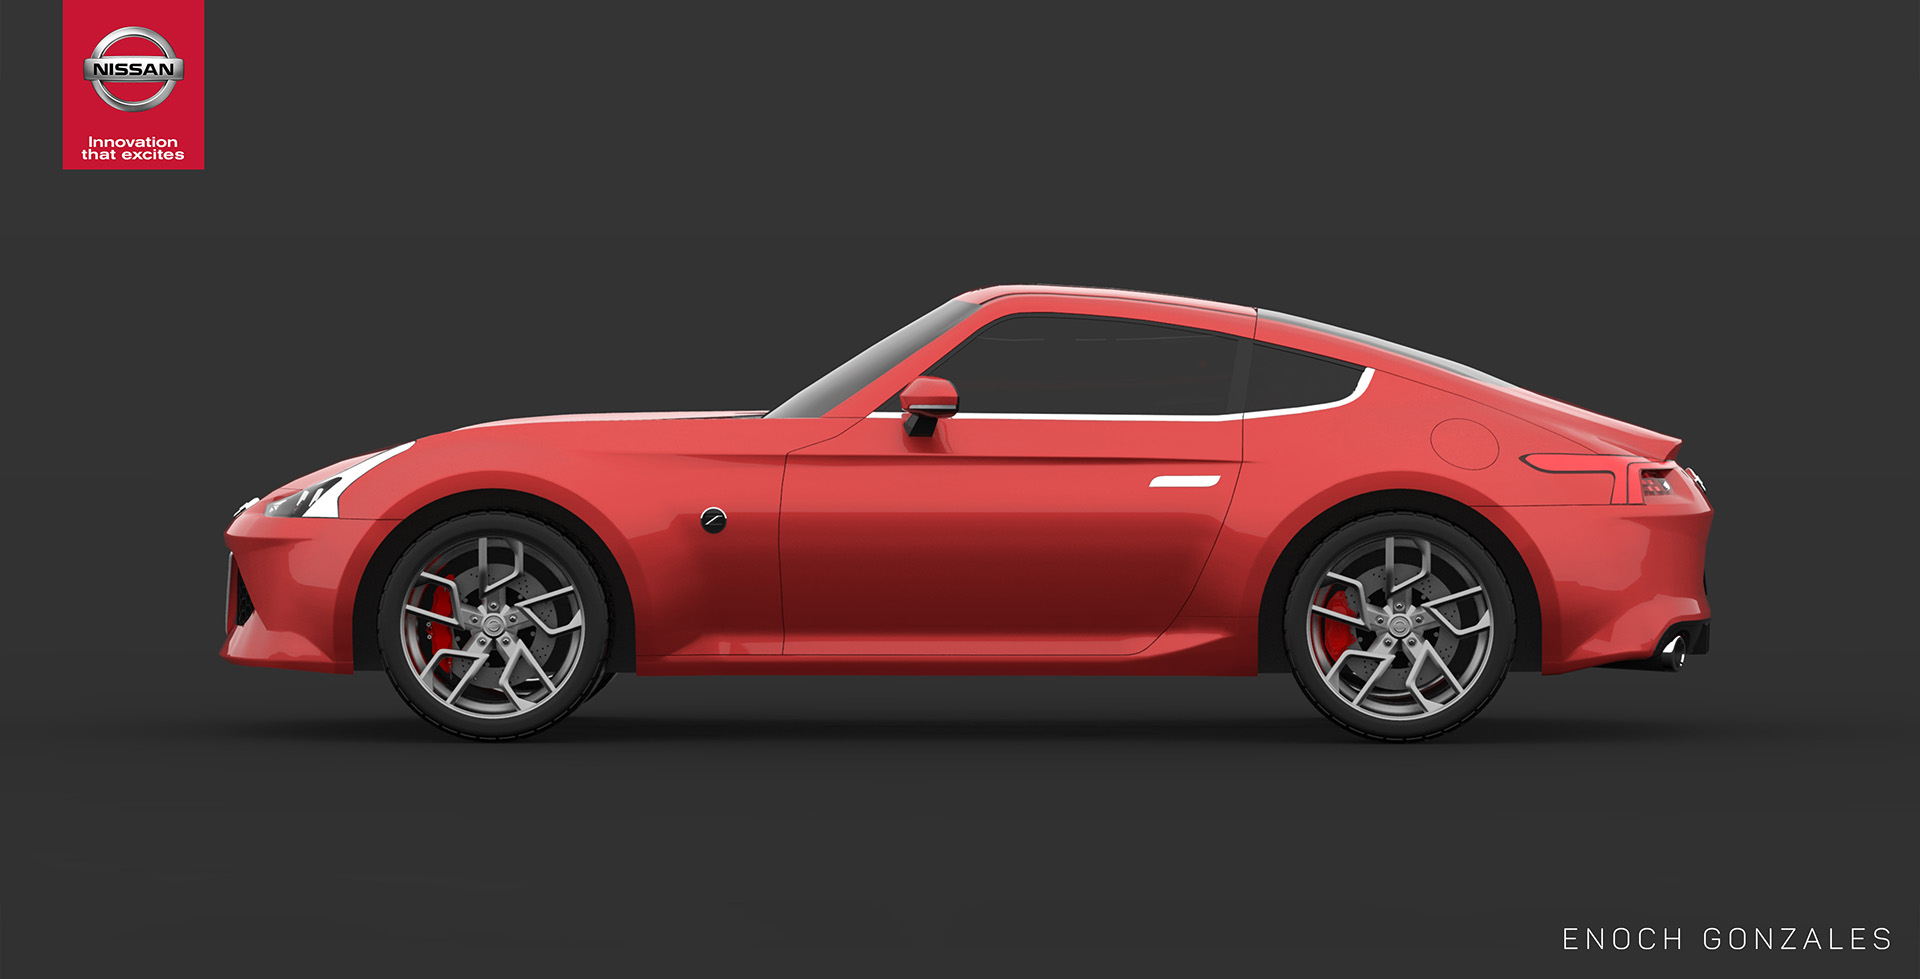 2019 Nissan Z Car >> 2019 Nissan Fairlady Z realistically envisioned - ForceGT.com